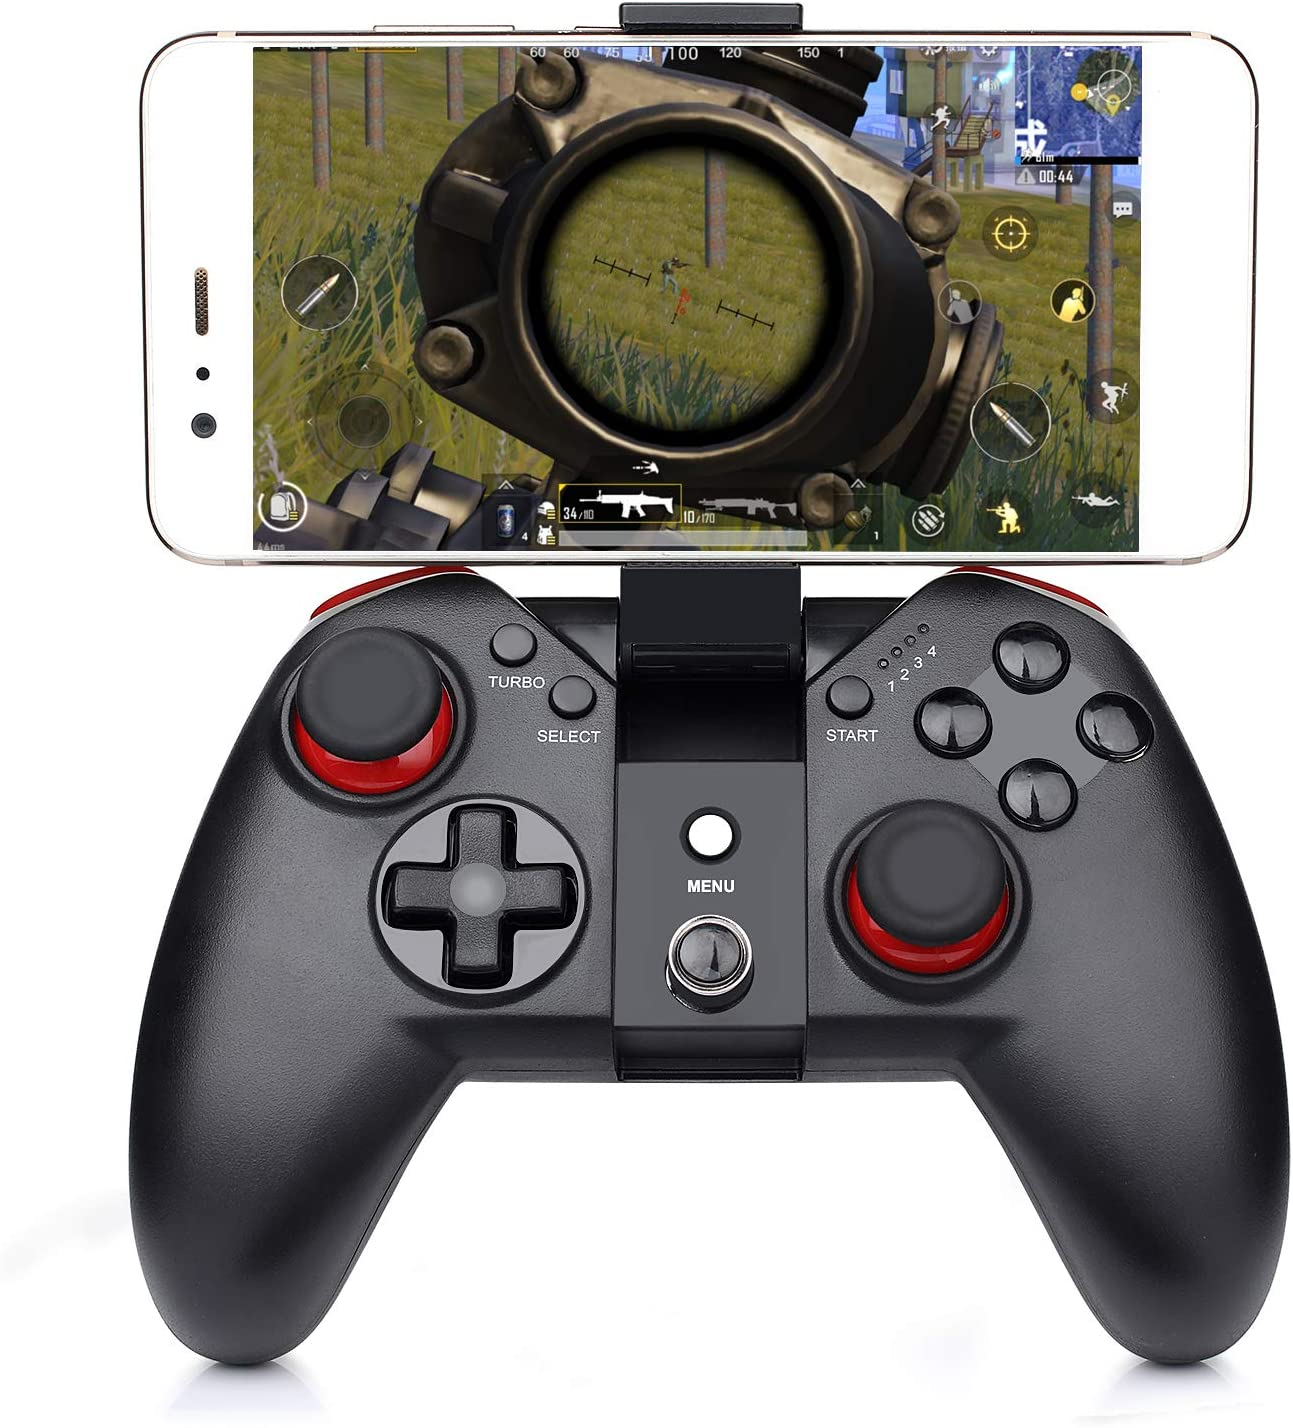 Momen Mobile Gaming Controller Wireless Gamepad Joystick for Android Smartphone Windows PC PS3 VR TV Box